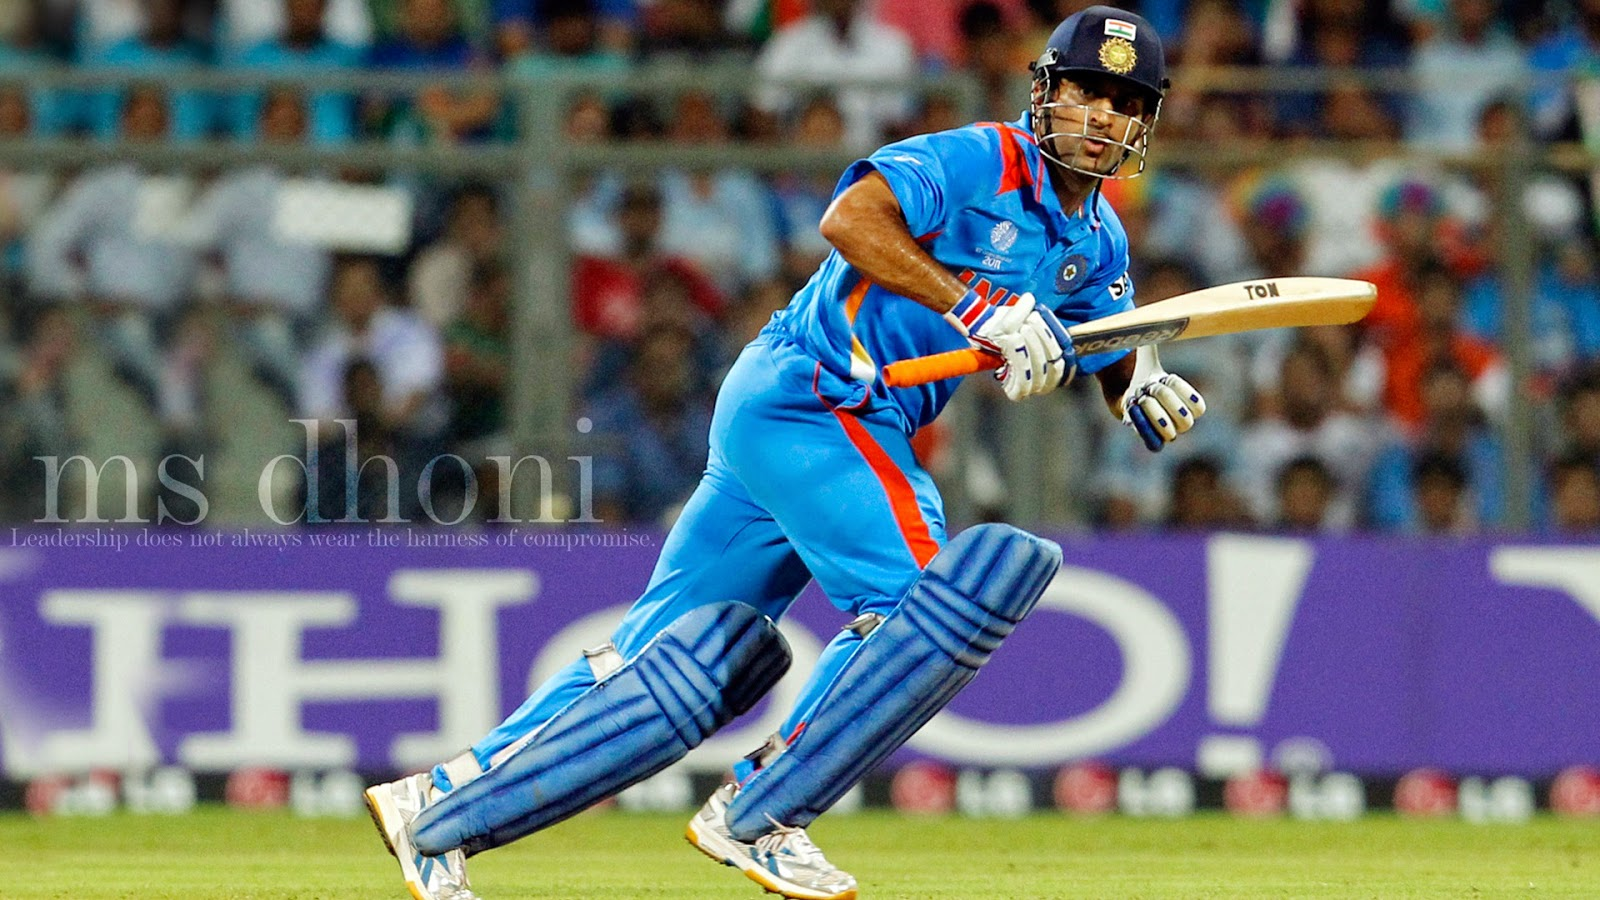 dhoni picture run on pitch